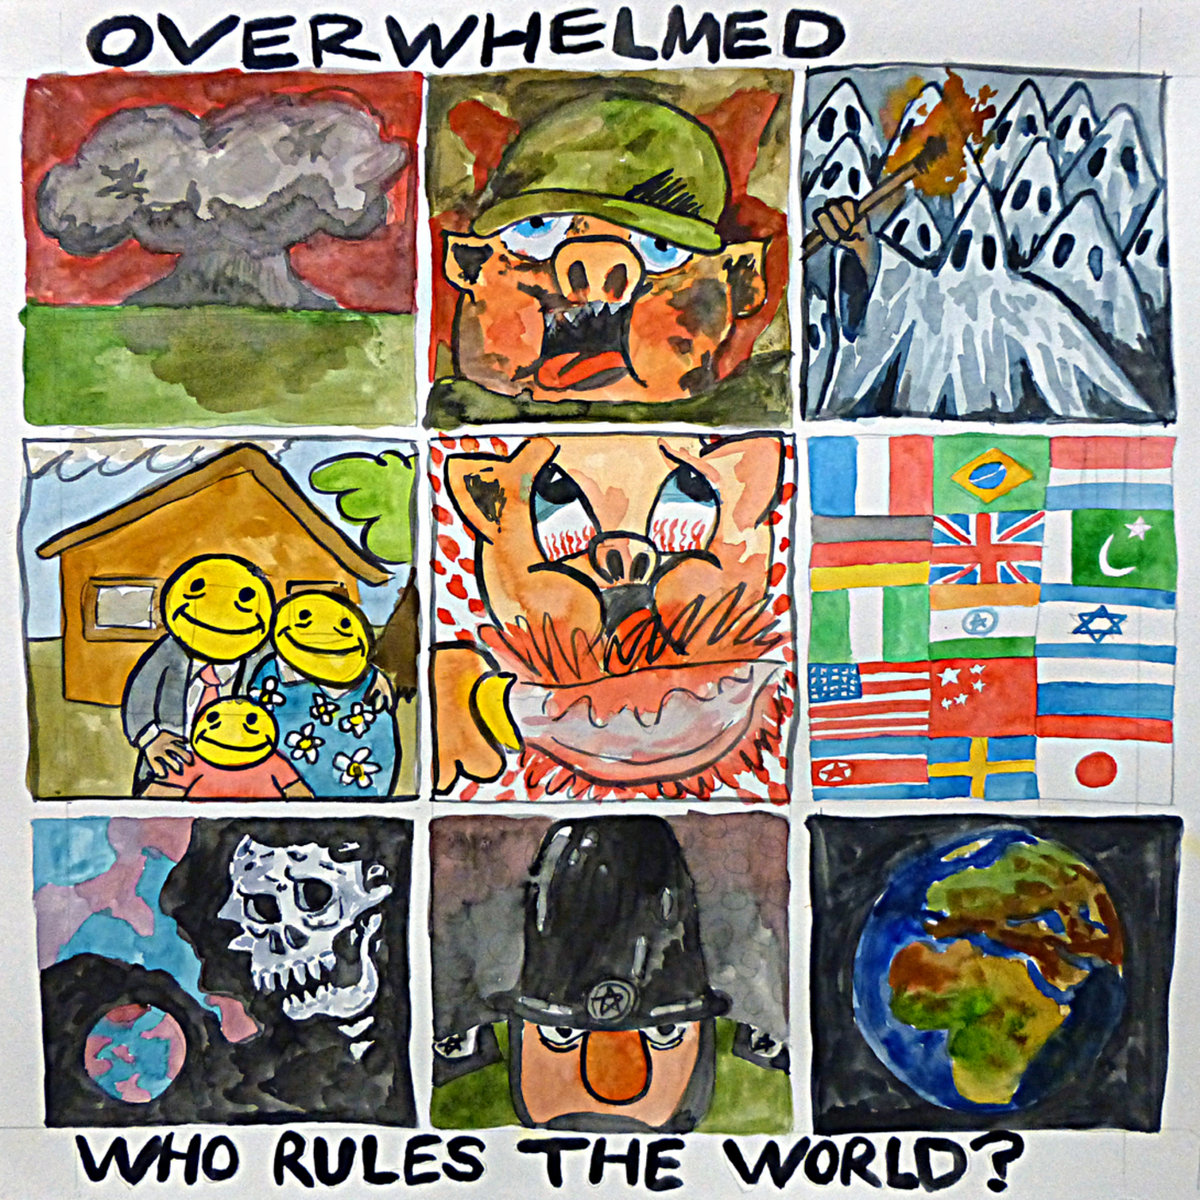 Overwhelmed - Who Rules The World 7